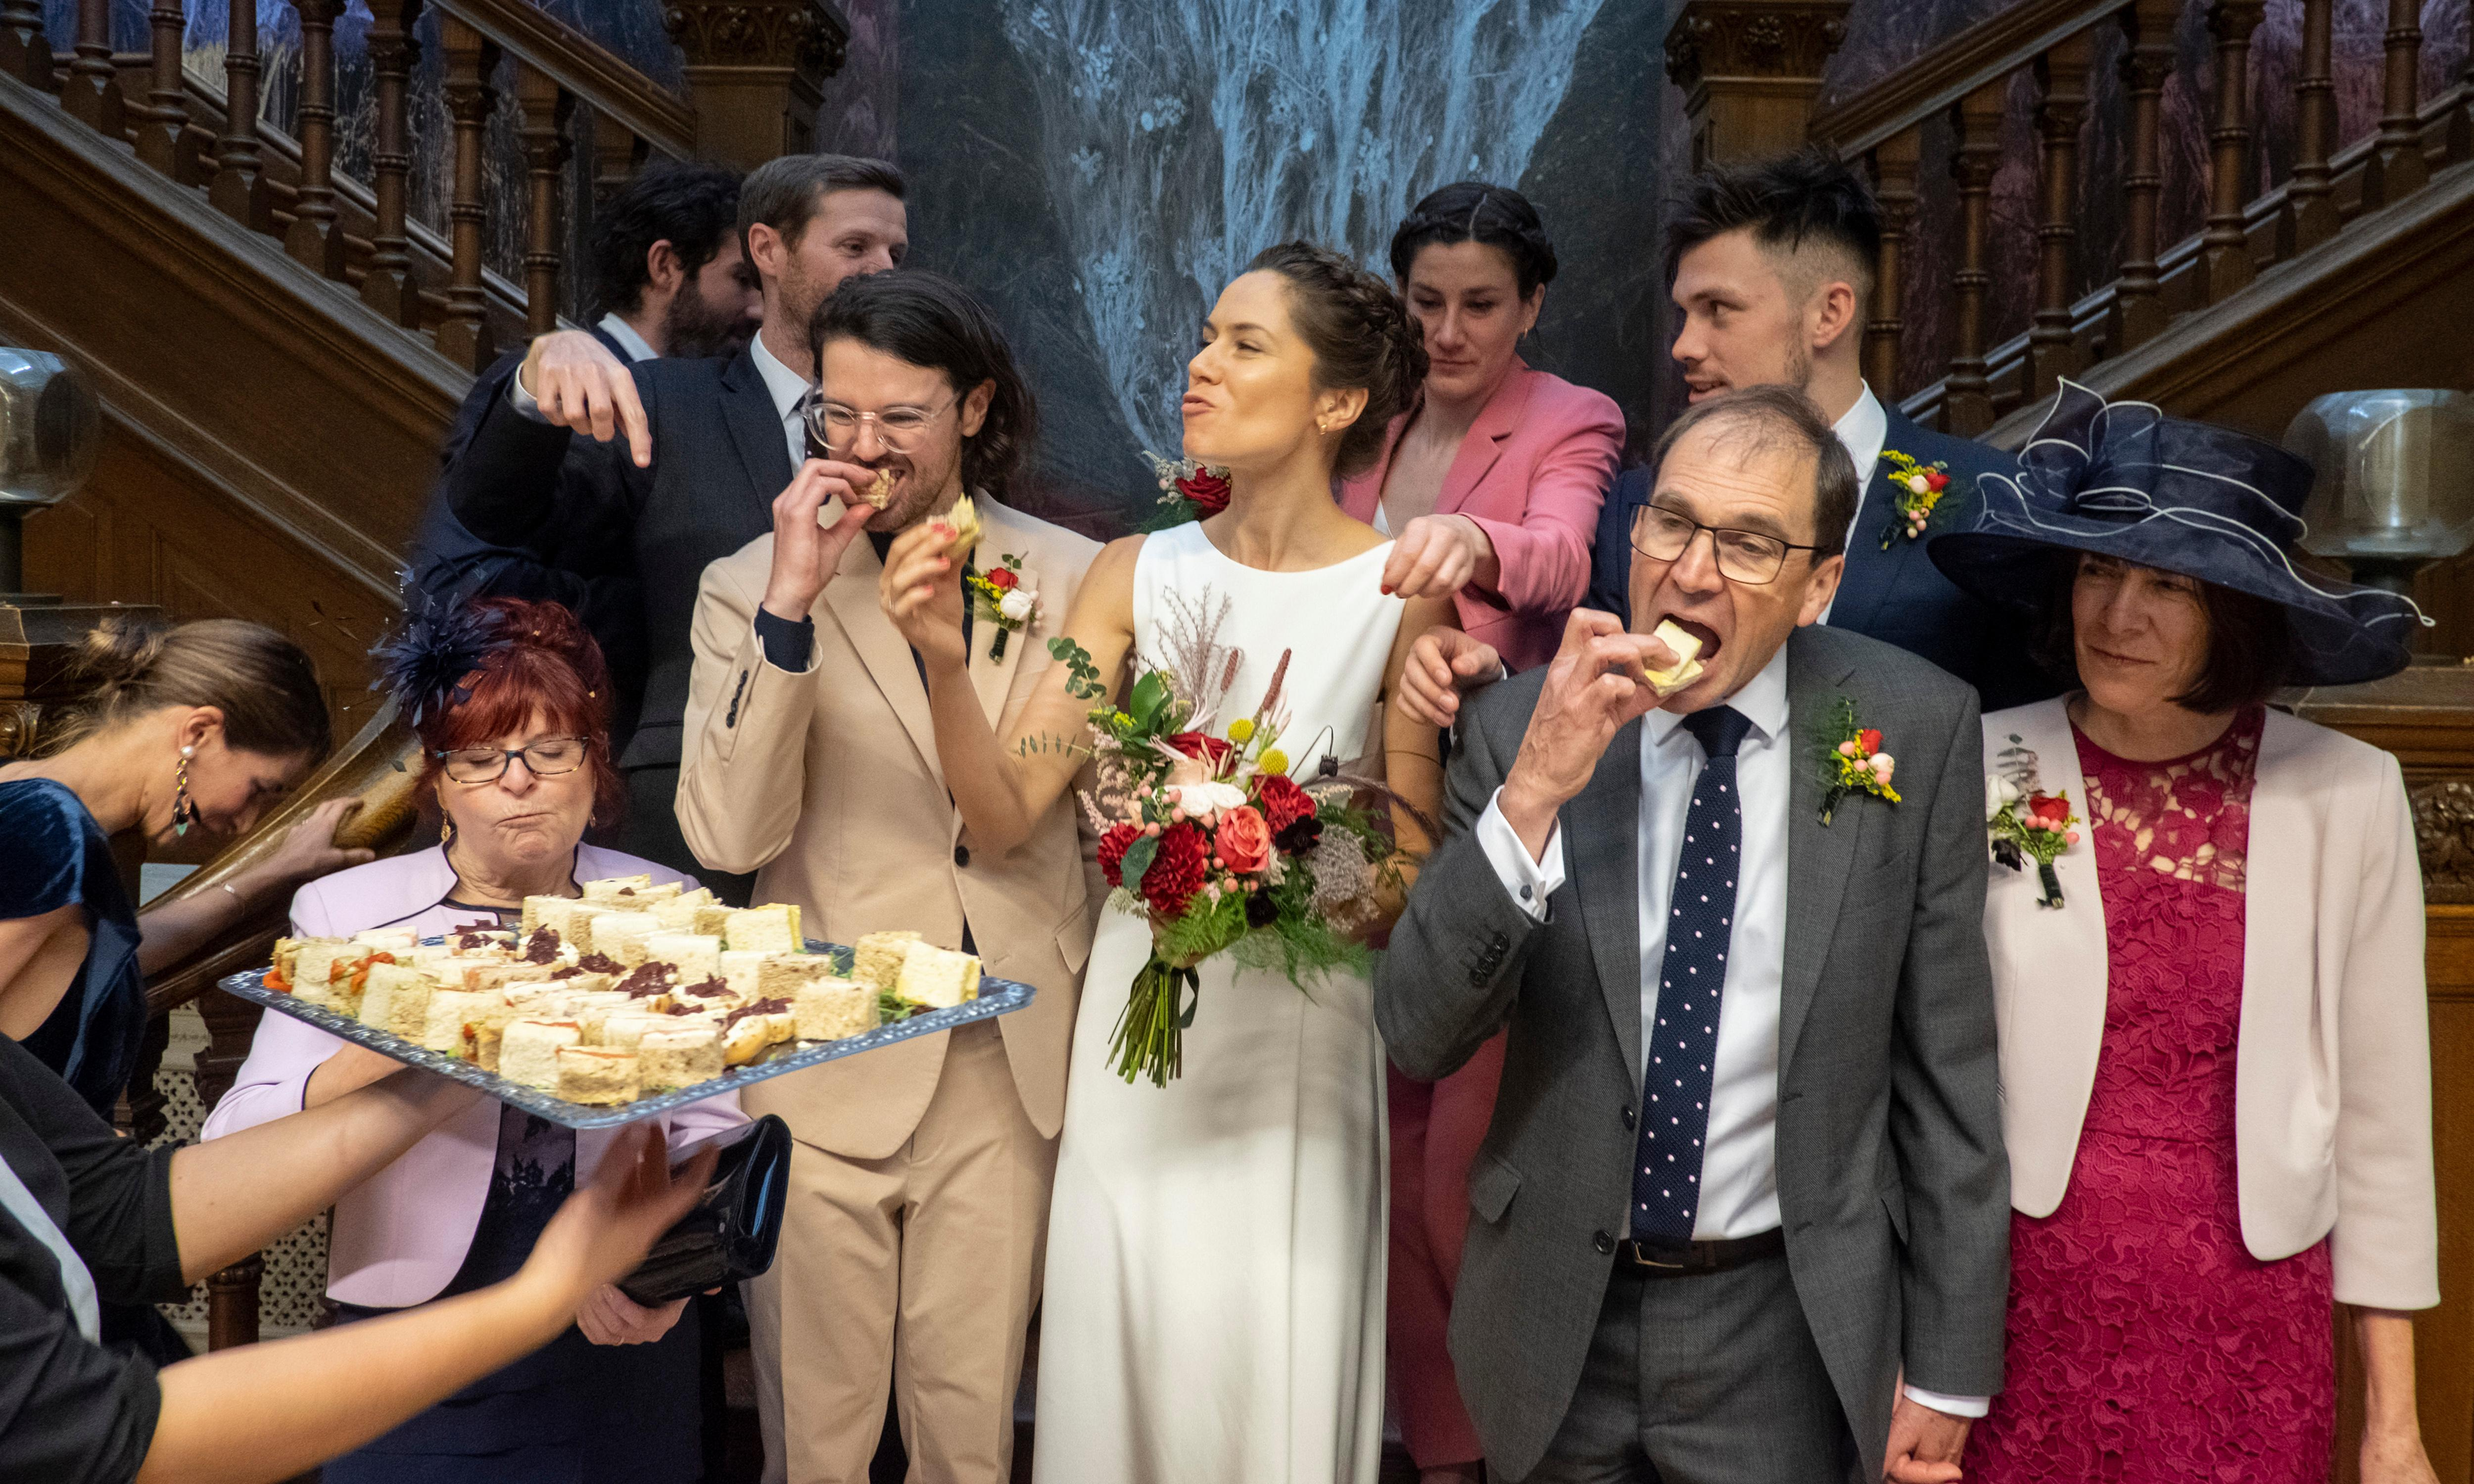 The big picture: funny faces and quick canapes on a couple's big day